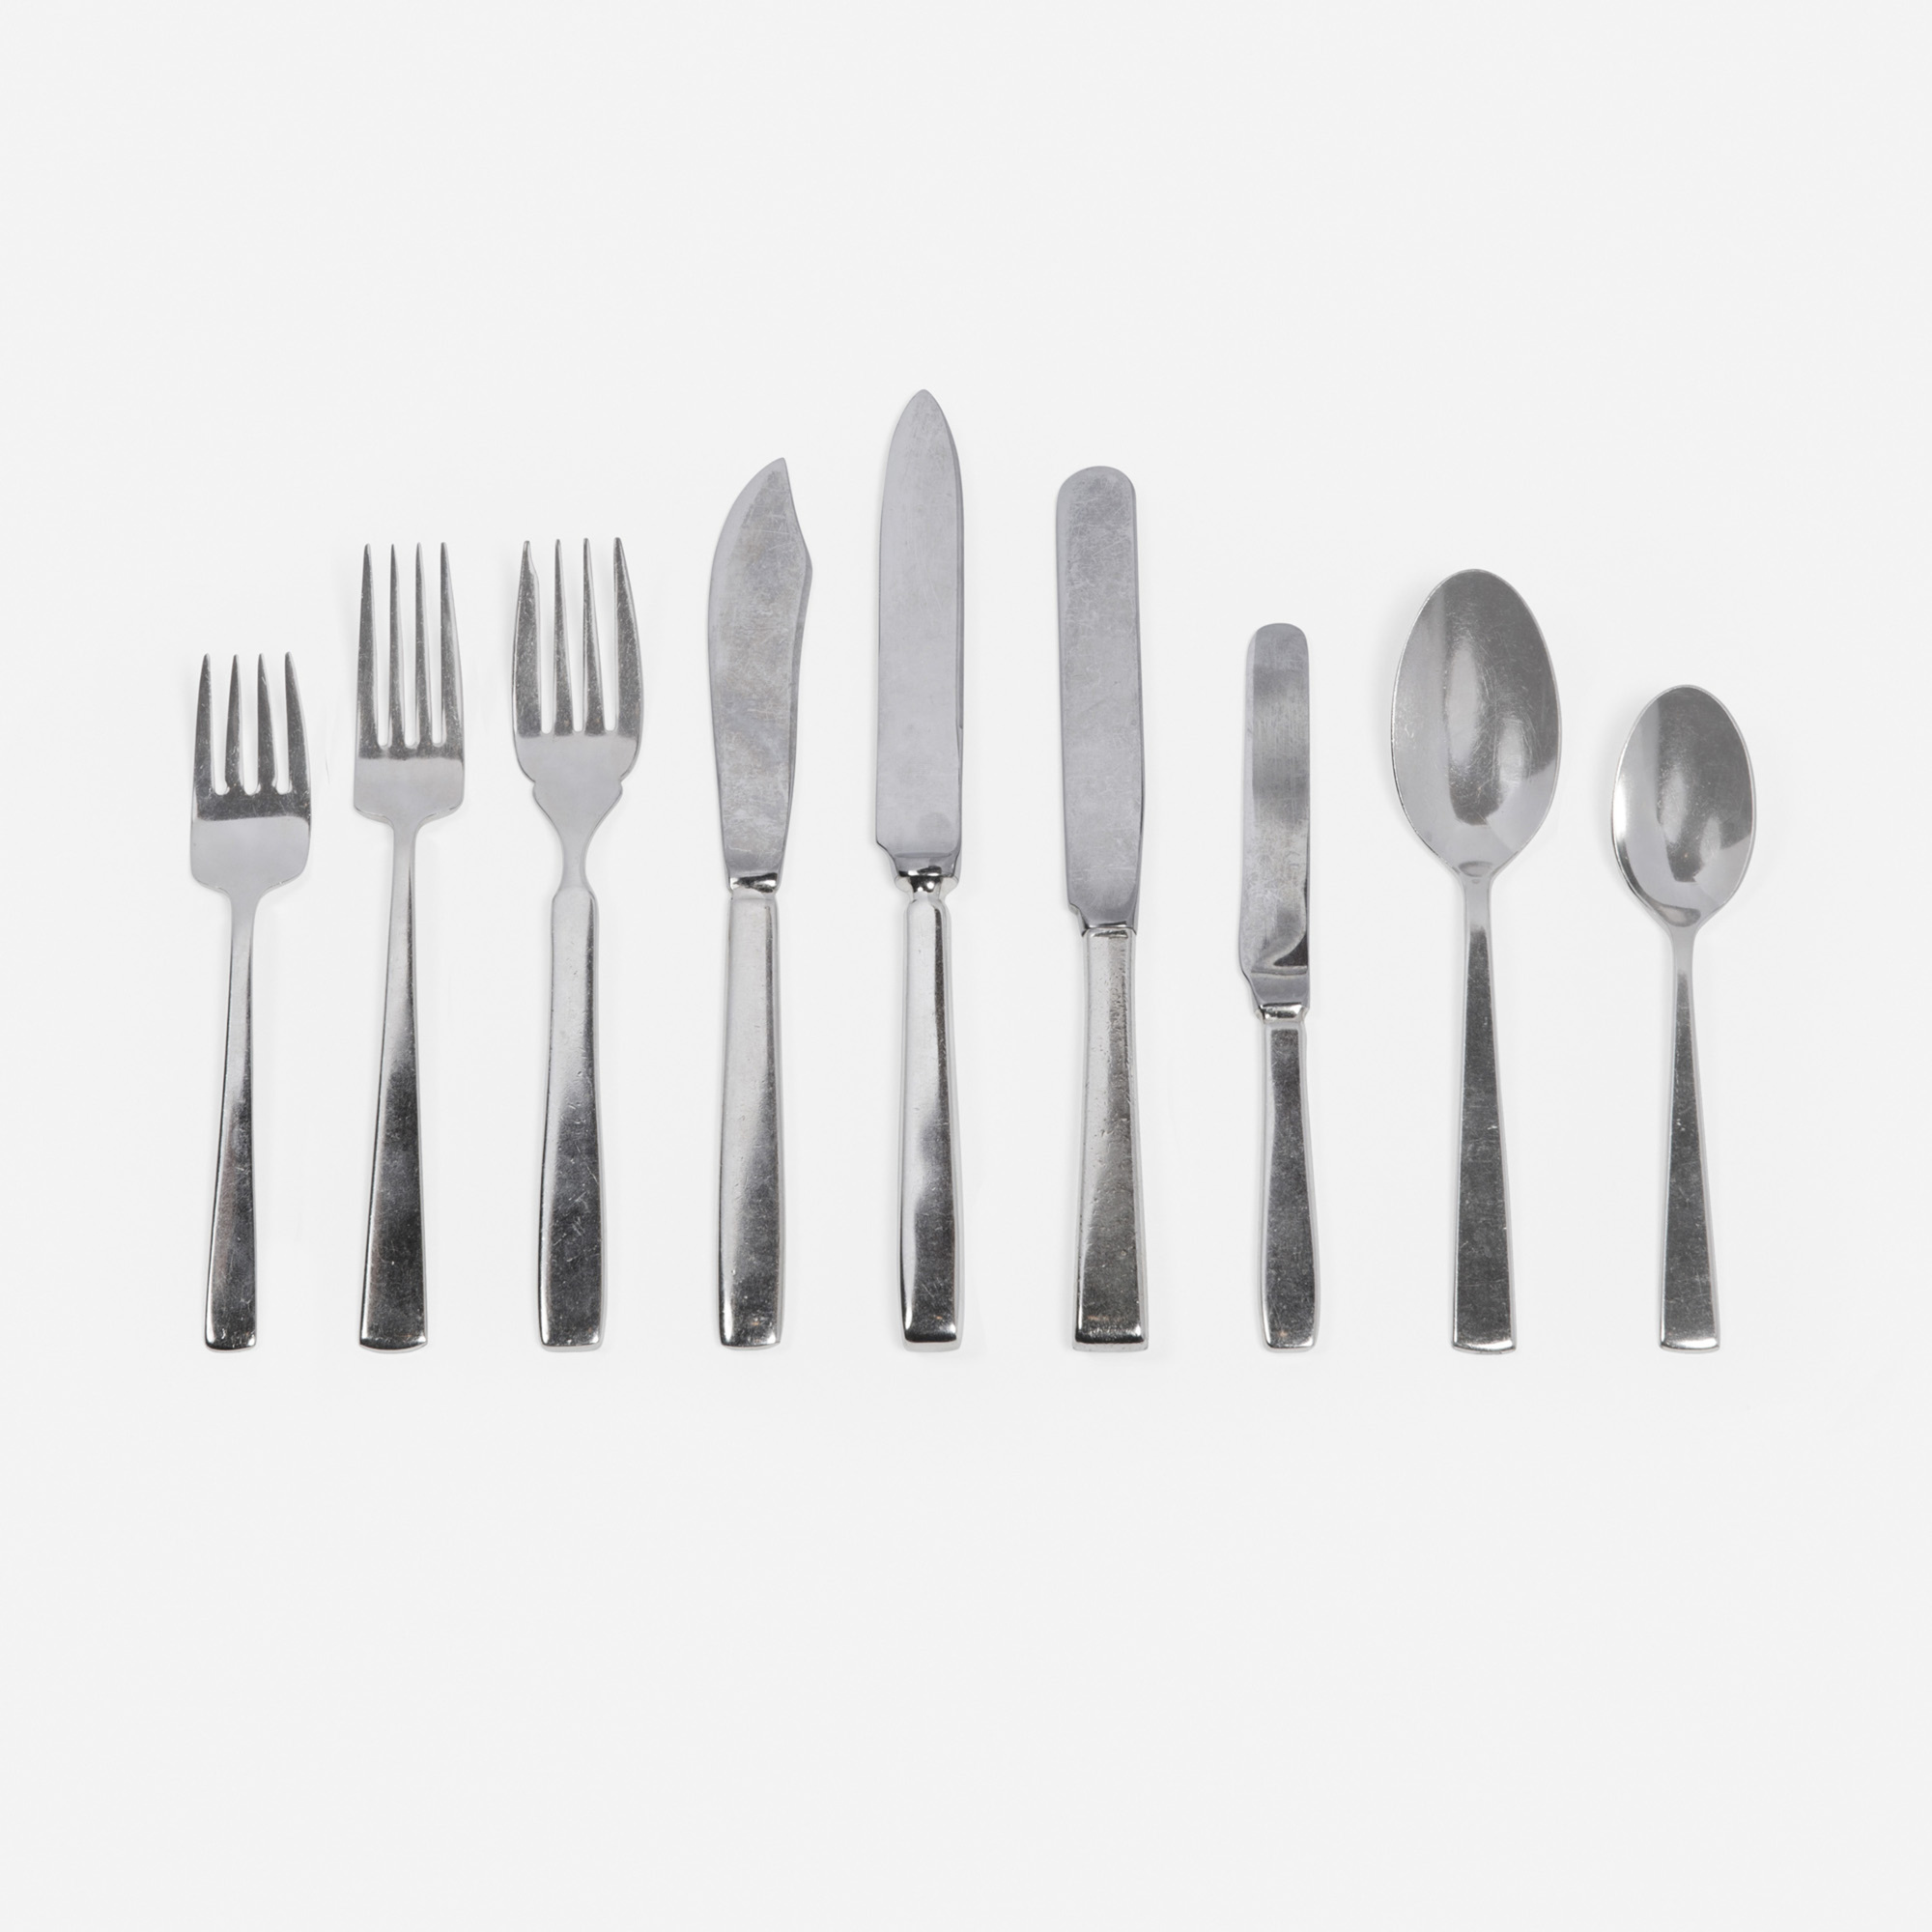 627: Garth and Ada Louise Huxtable / Four Seasons flatware from the Pool Room, service for twelve (1 of 1)